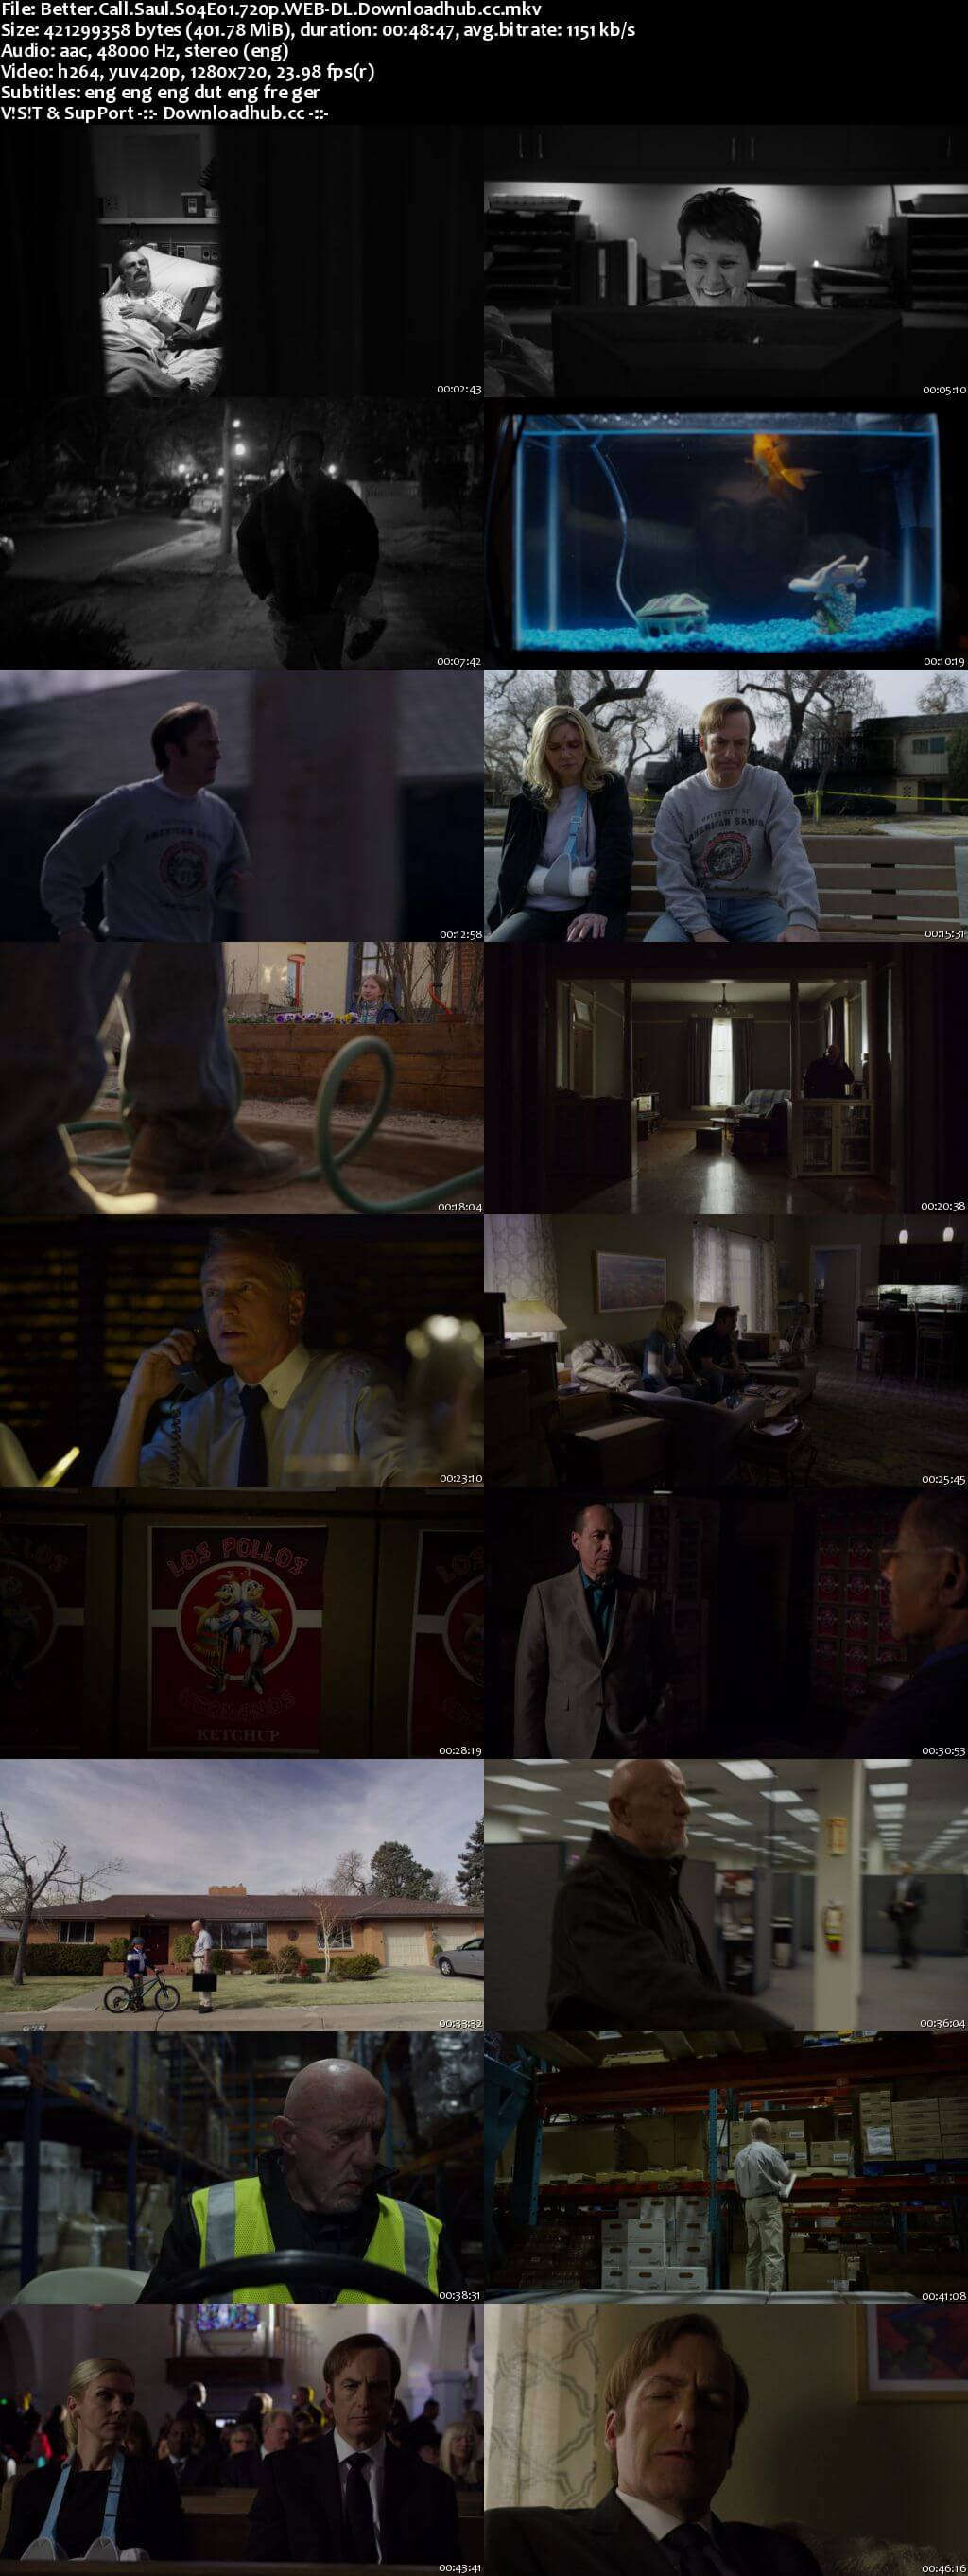 Better Call Saul S04E01 400MB WEB-DL 720p x264 MSubs